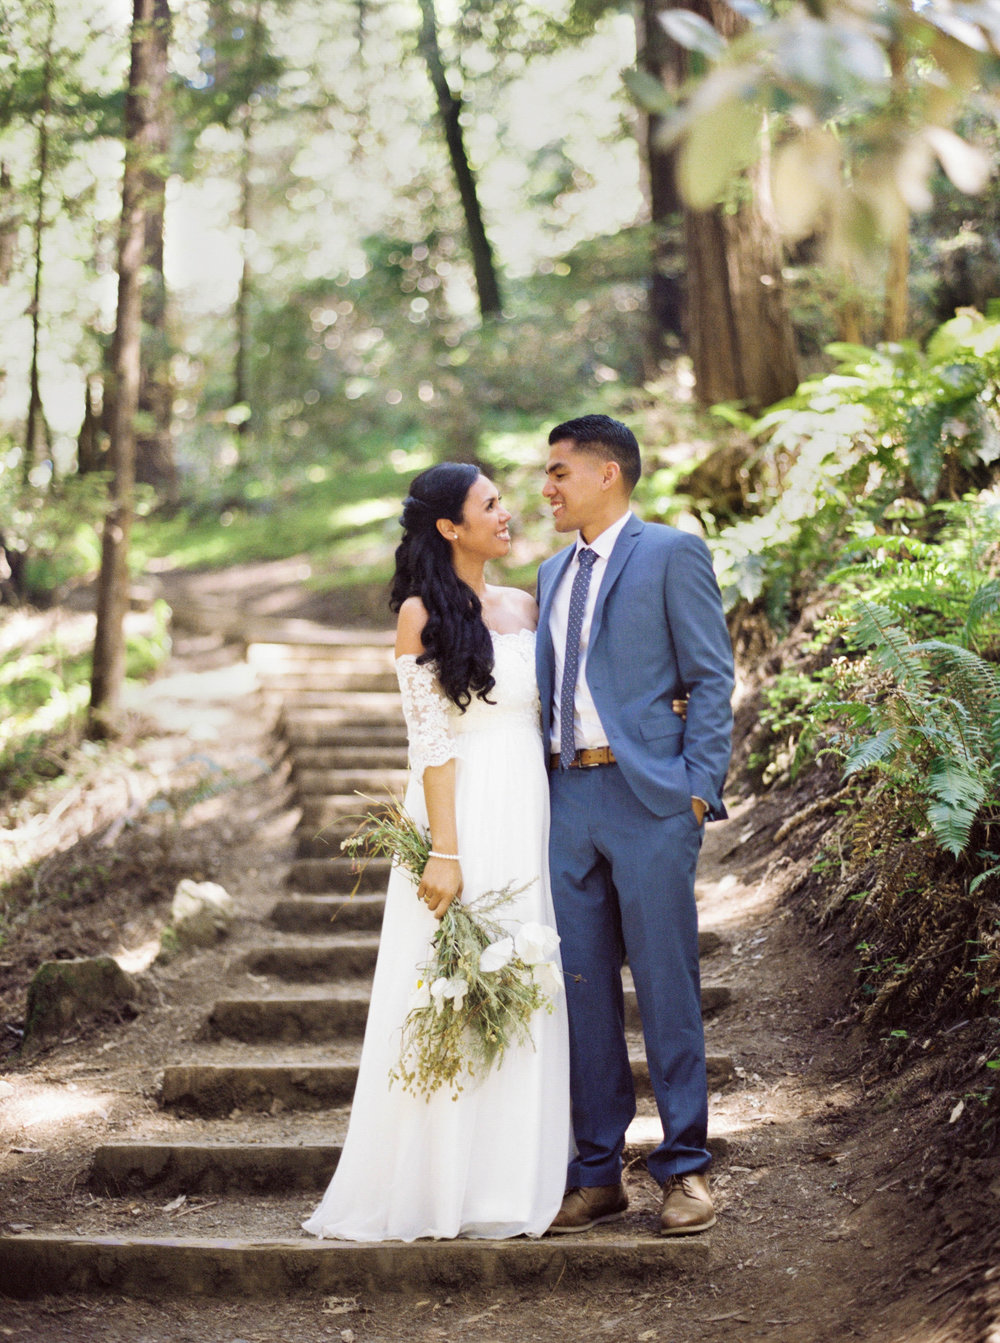 012_Krysten-Crebin-Muir-Woods-Elopement-Wedding-Photographer.jpg